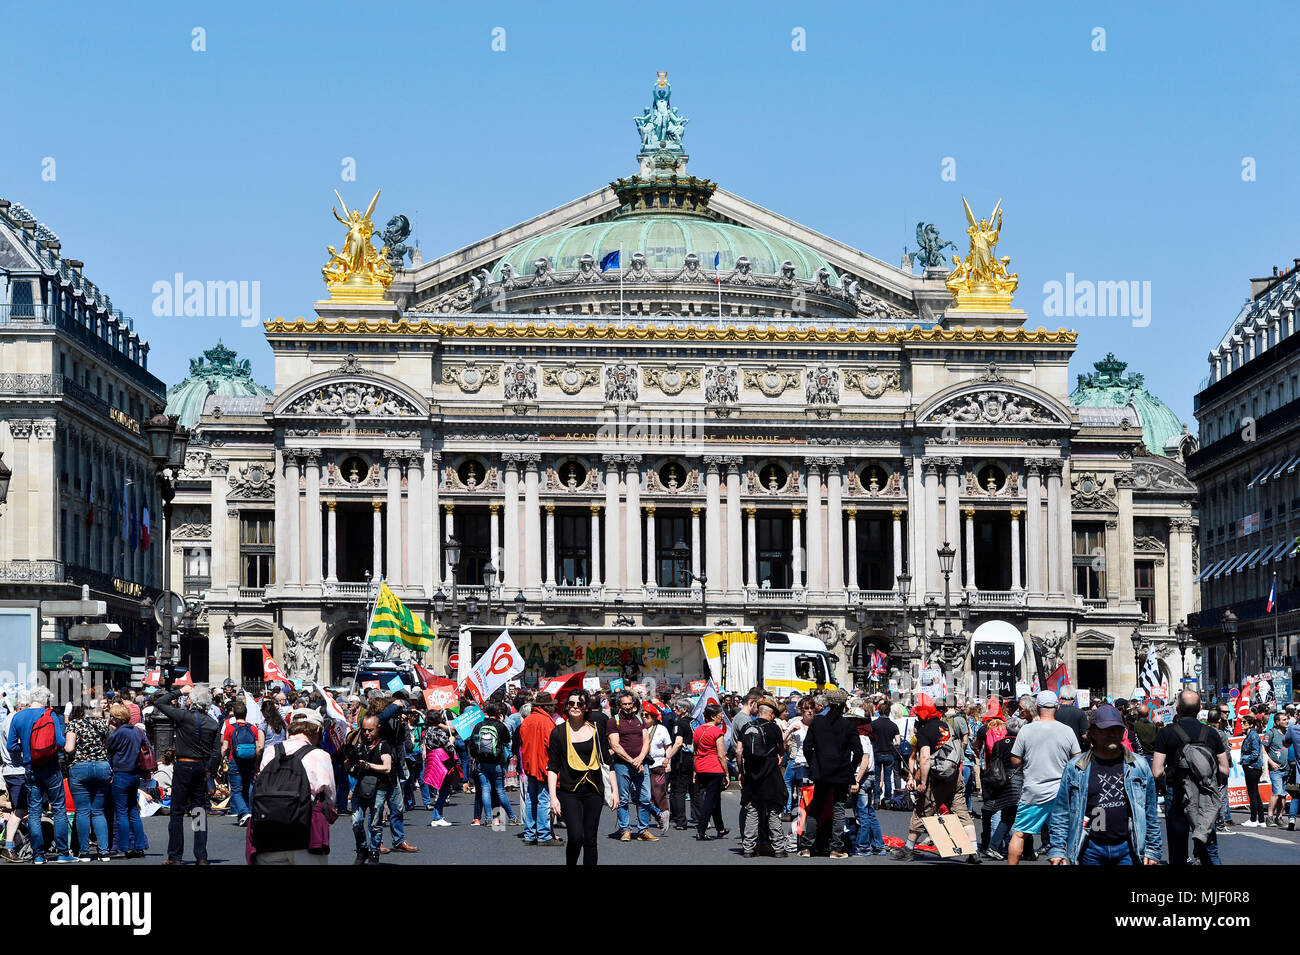 Paris, France. 5th May, 2018. La Fête à Macron (The Party for Macron) 1st anniversary french président rally - Paris on 5th of May 2018 - Place de l'Opéra Credit: Frédéric VIELCANET/Alamy Live News Stock Photo